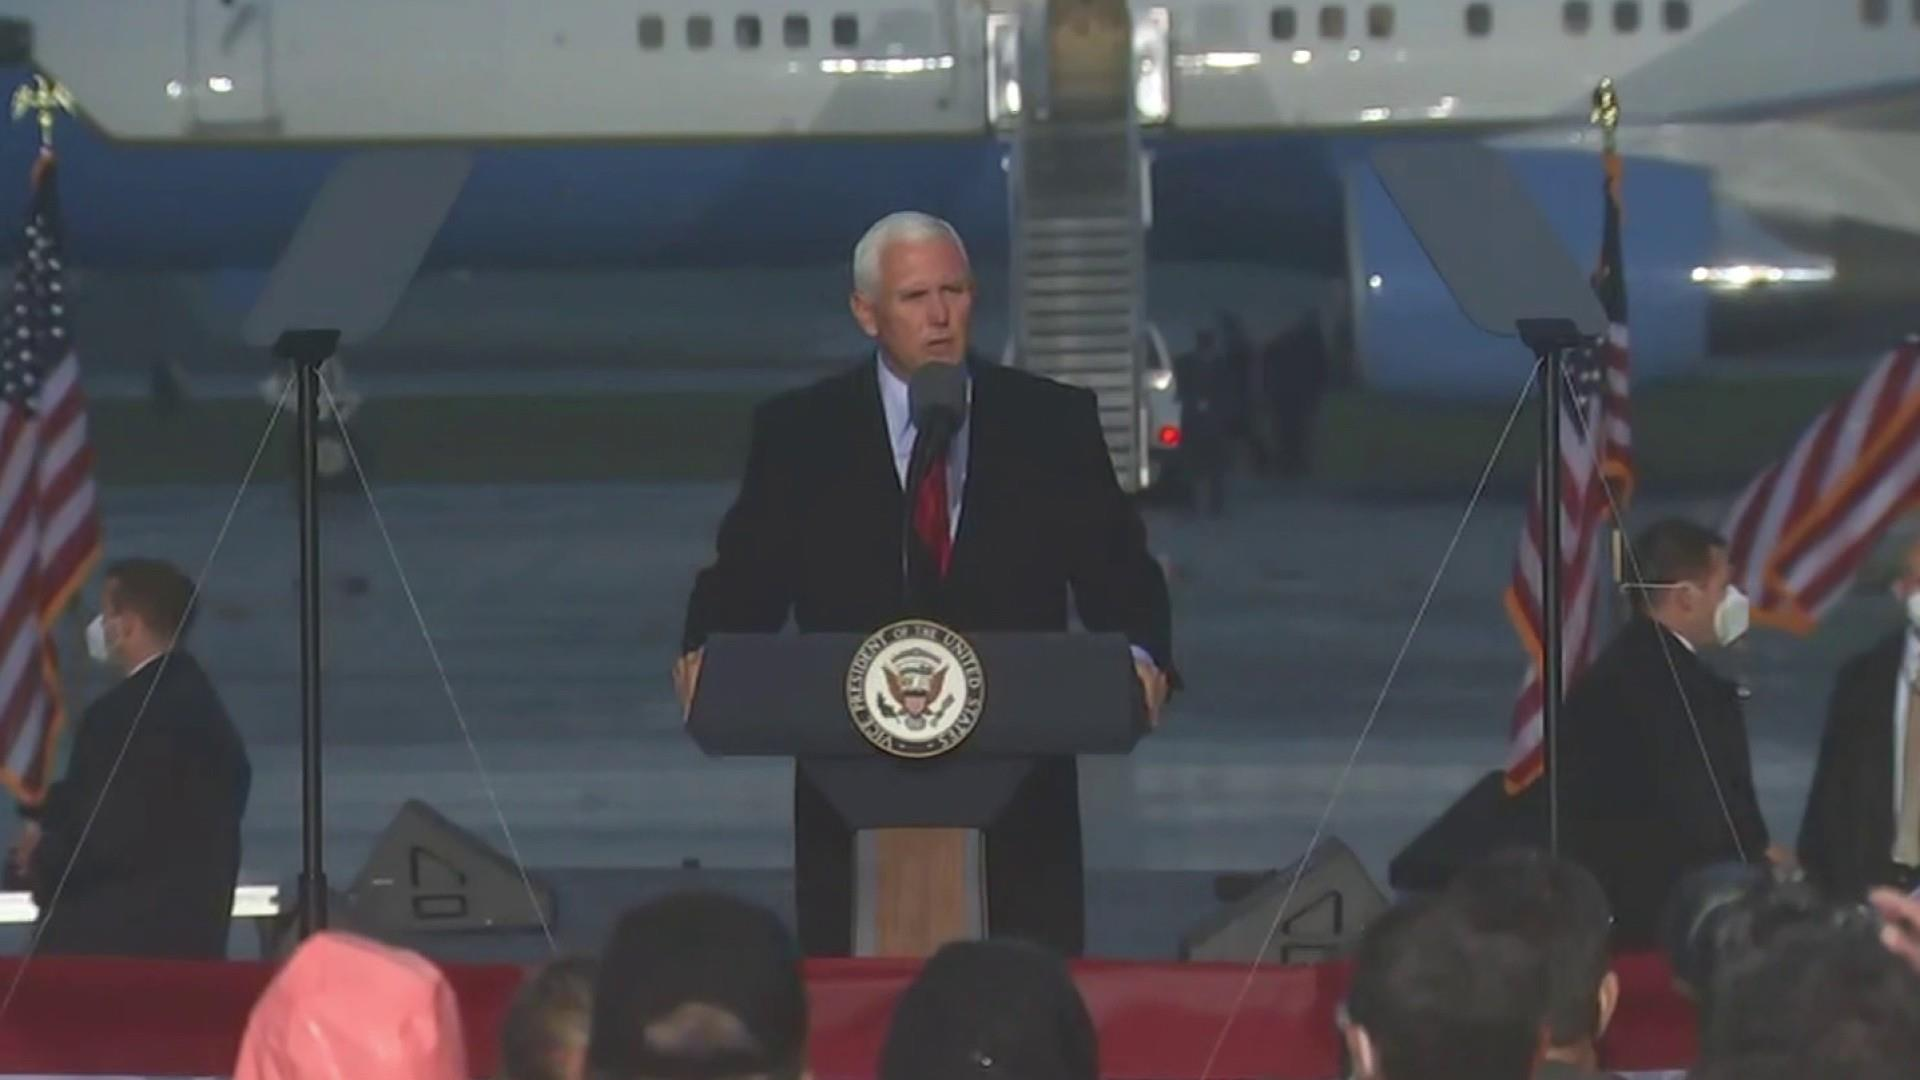 Pence on campaign trail despite COVID positive staff as cases surge across country